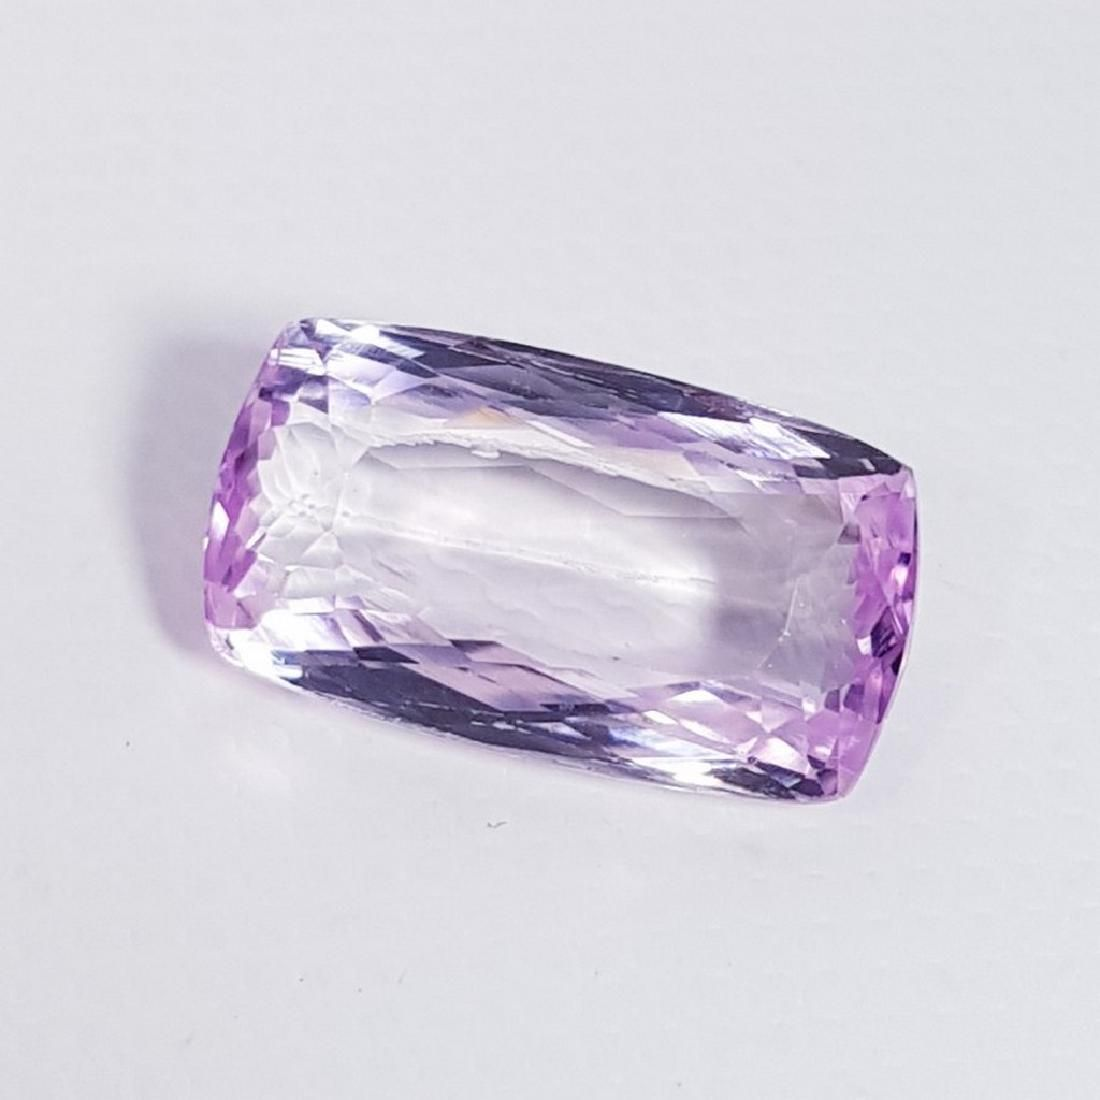 5.80 ct Top Quality Cushion Cut Natural Pink or Purple